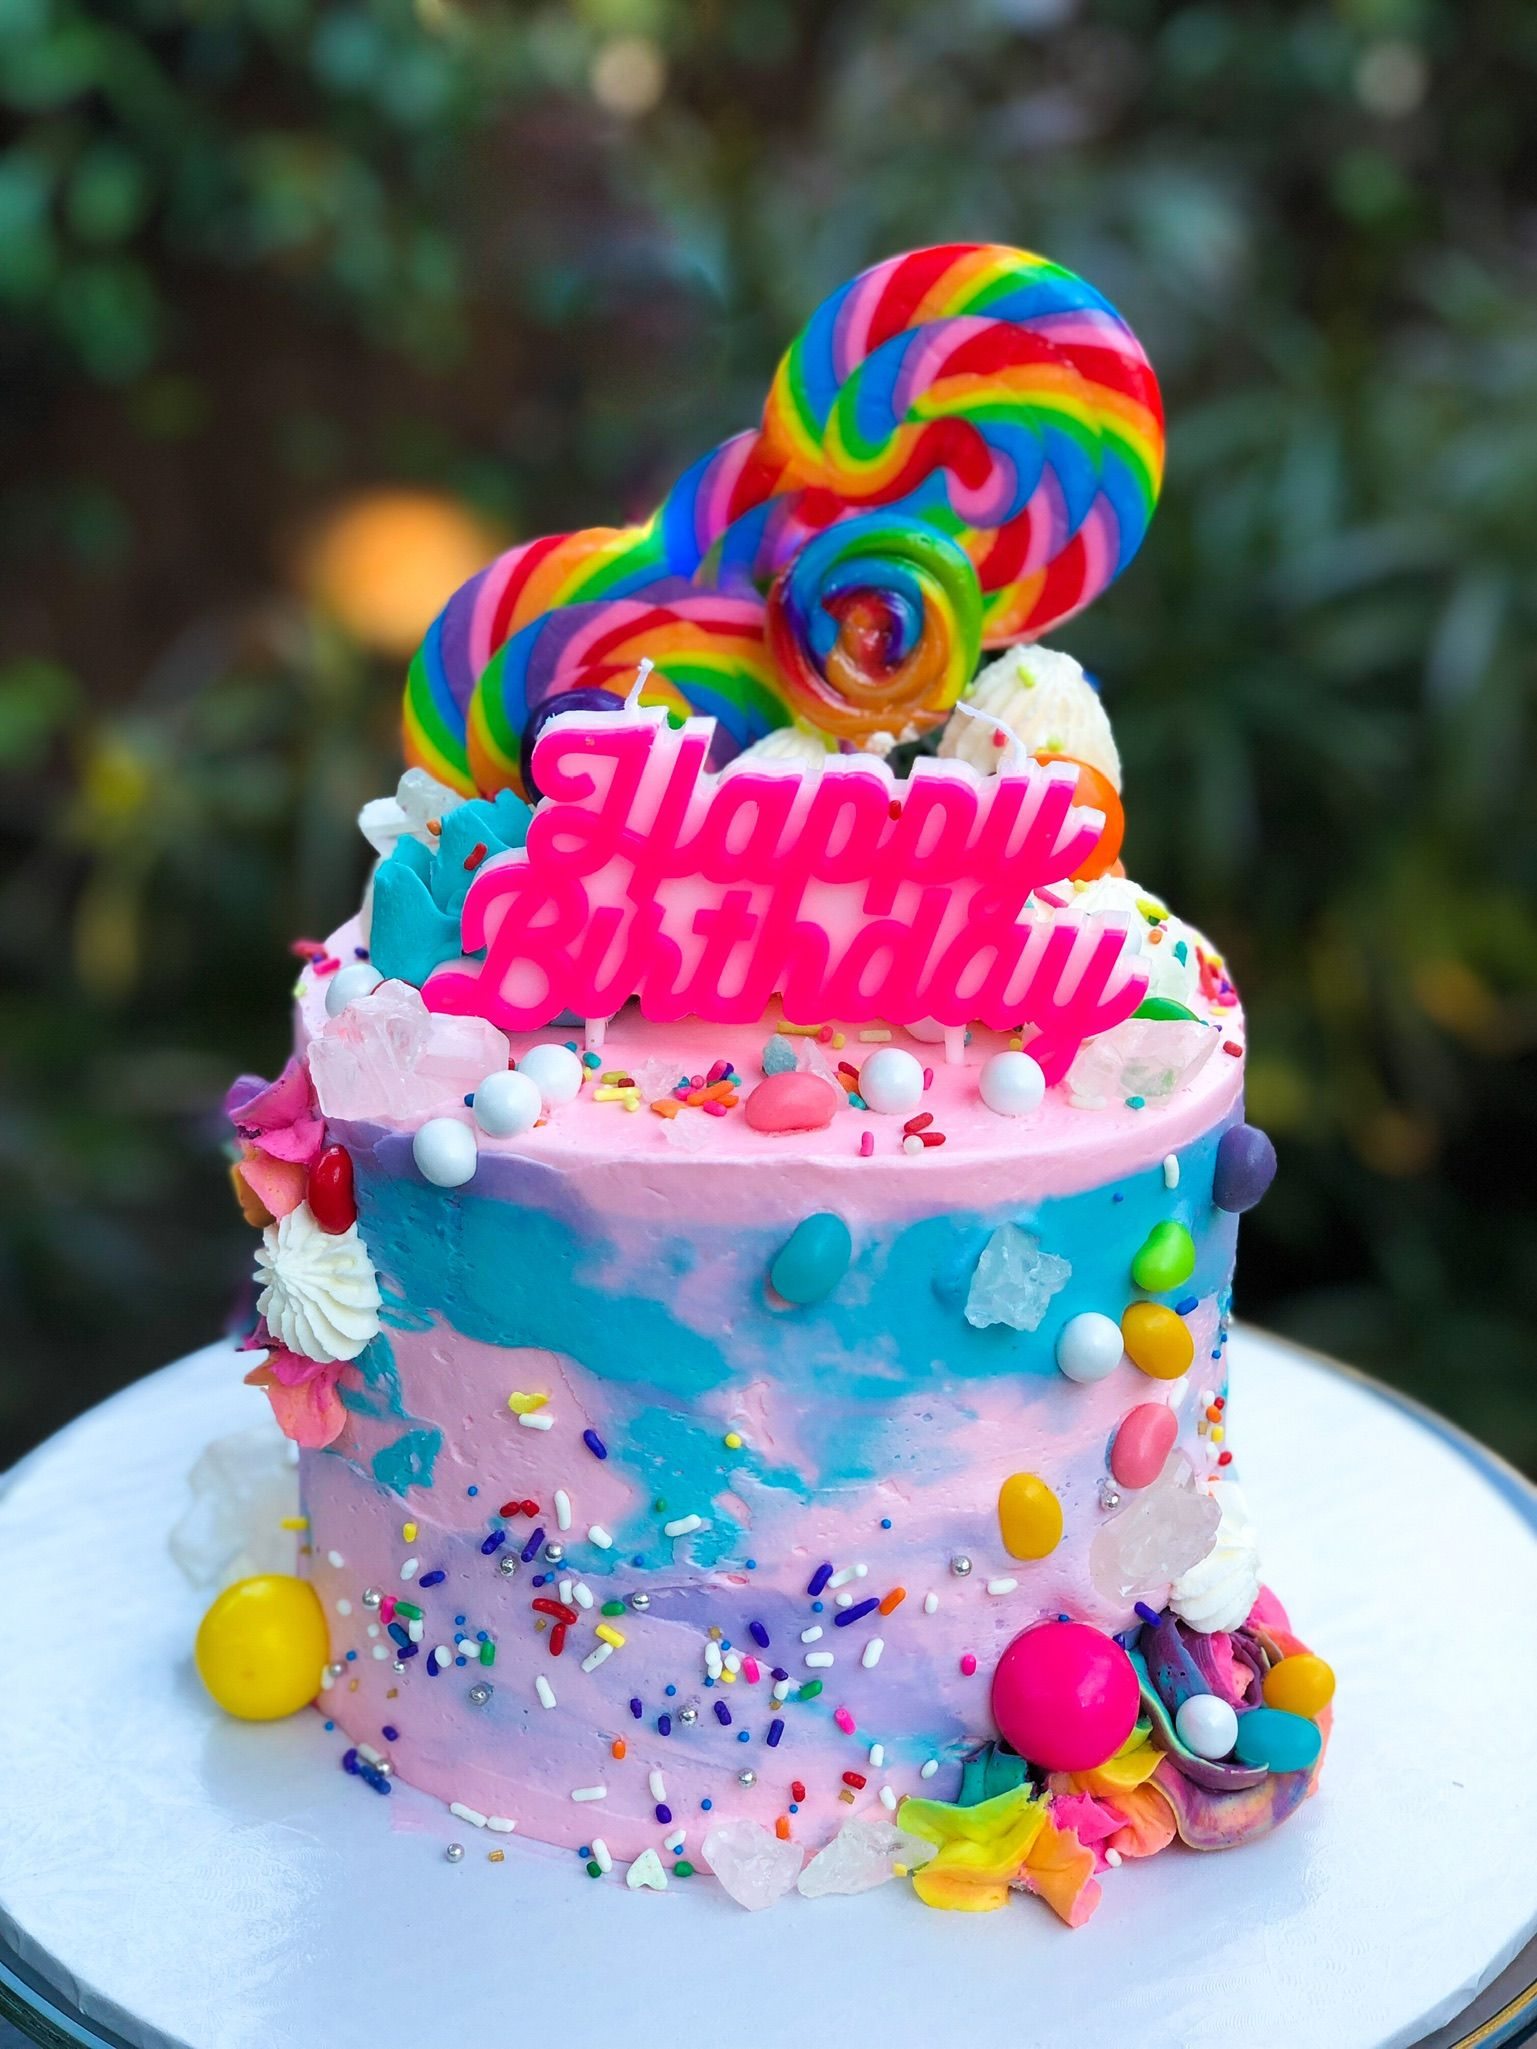 Rainbow overloaded birthday cake with candy and lollipops